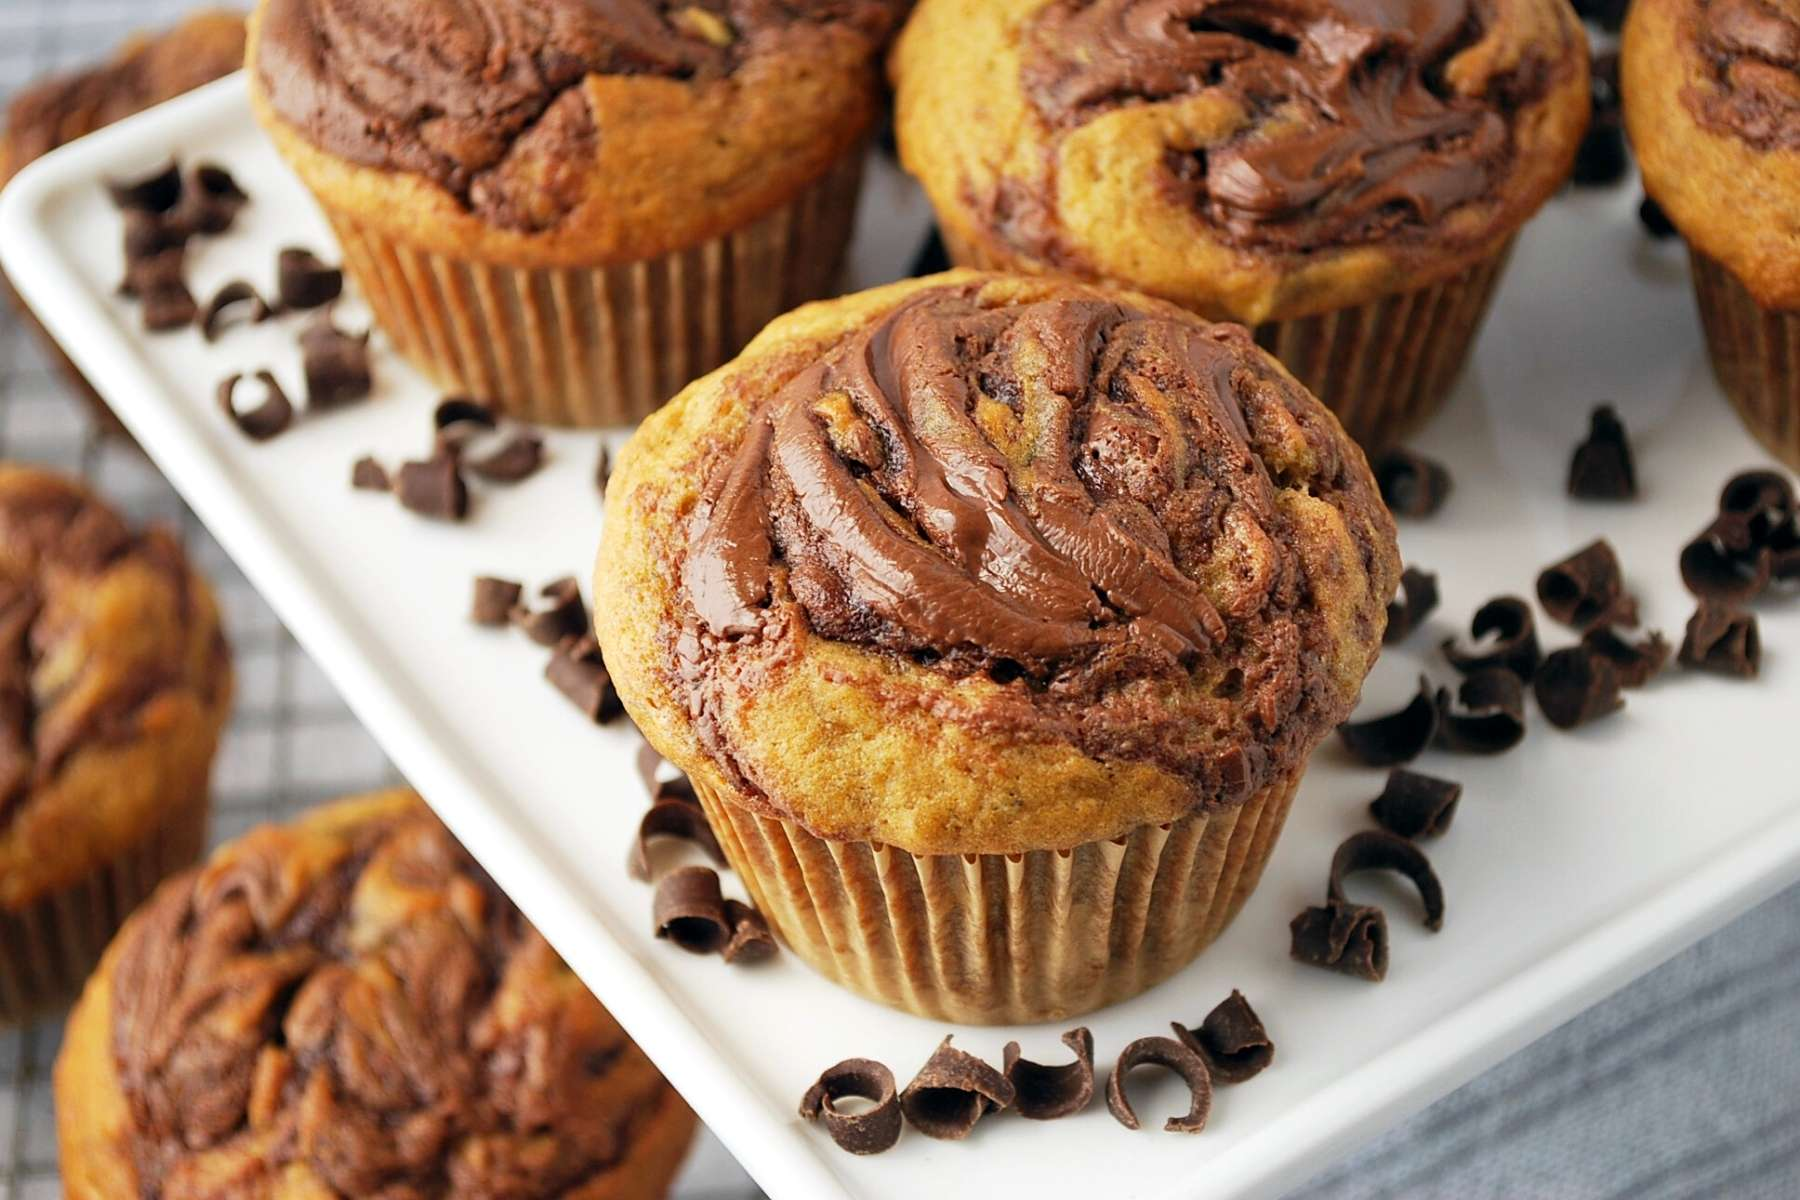 close up shot of a banana muffin with swirled Nutella on top